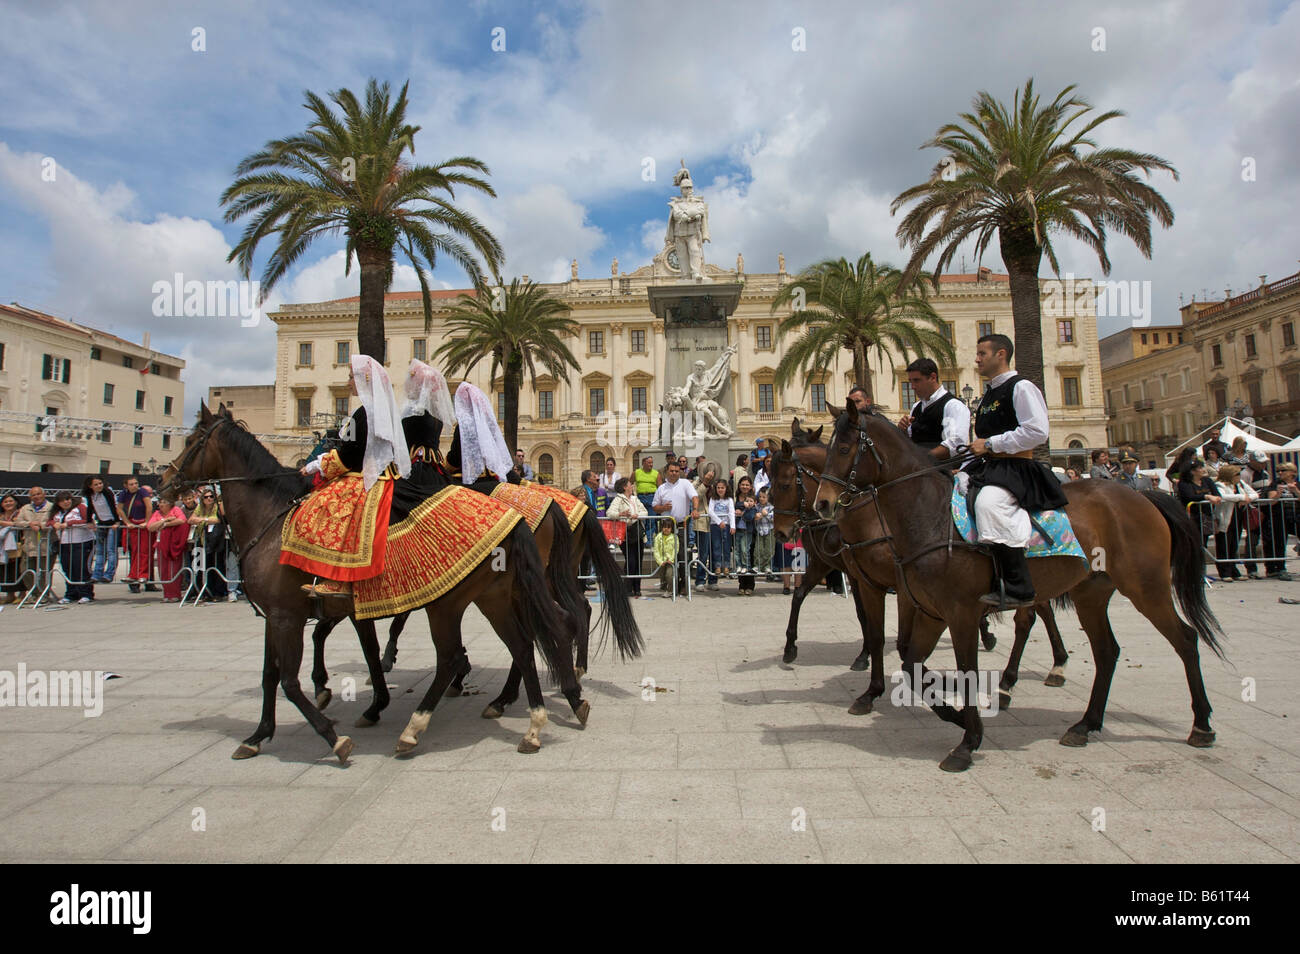 Men and women riding horses while wearing traditional costumes at the Cavalcata Sarda parade on the Piazza Italia - Stock Image